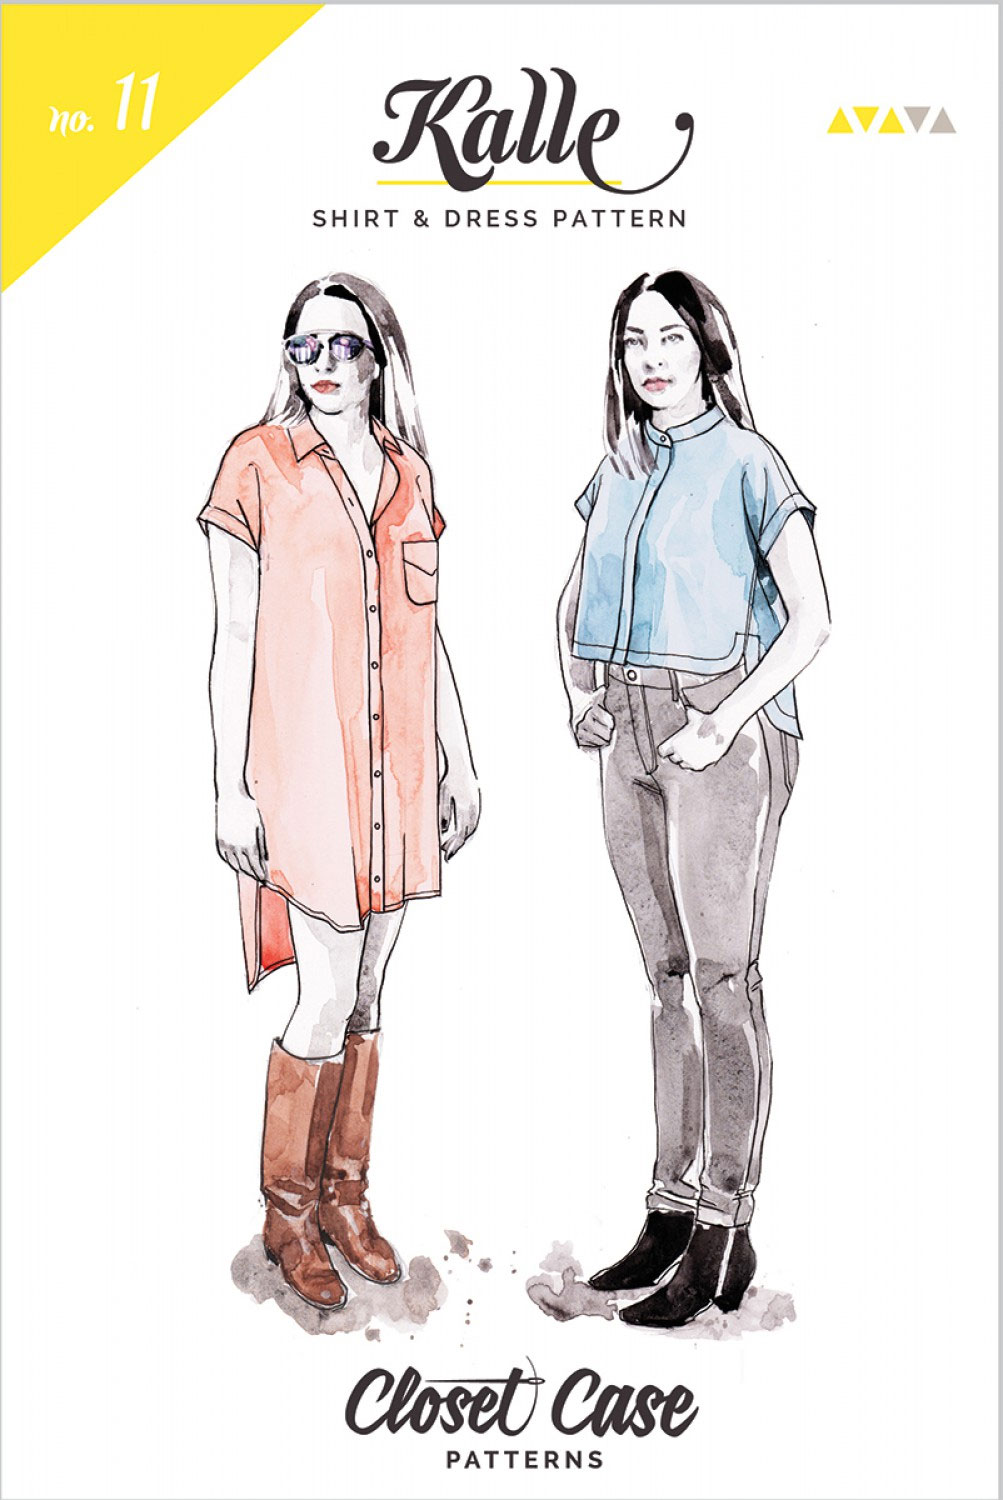 Kalle-Shirt-sewing-pattern-from-Closet-Case-front